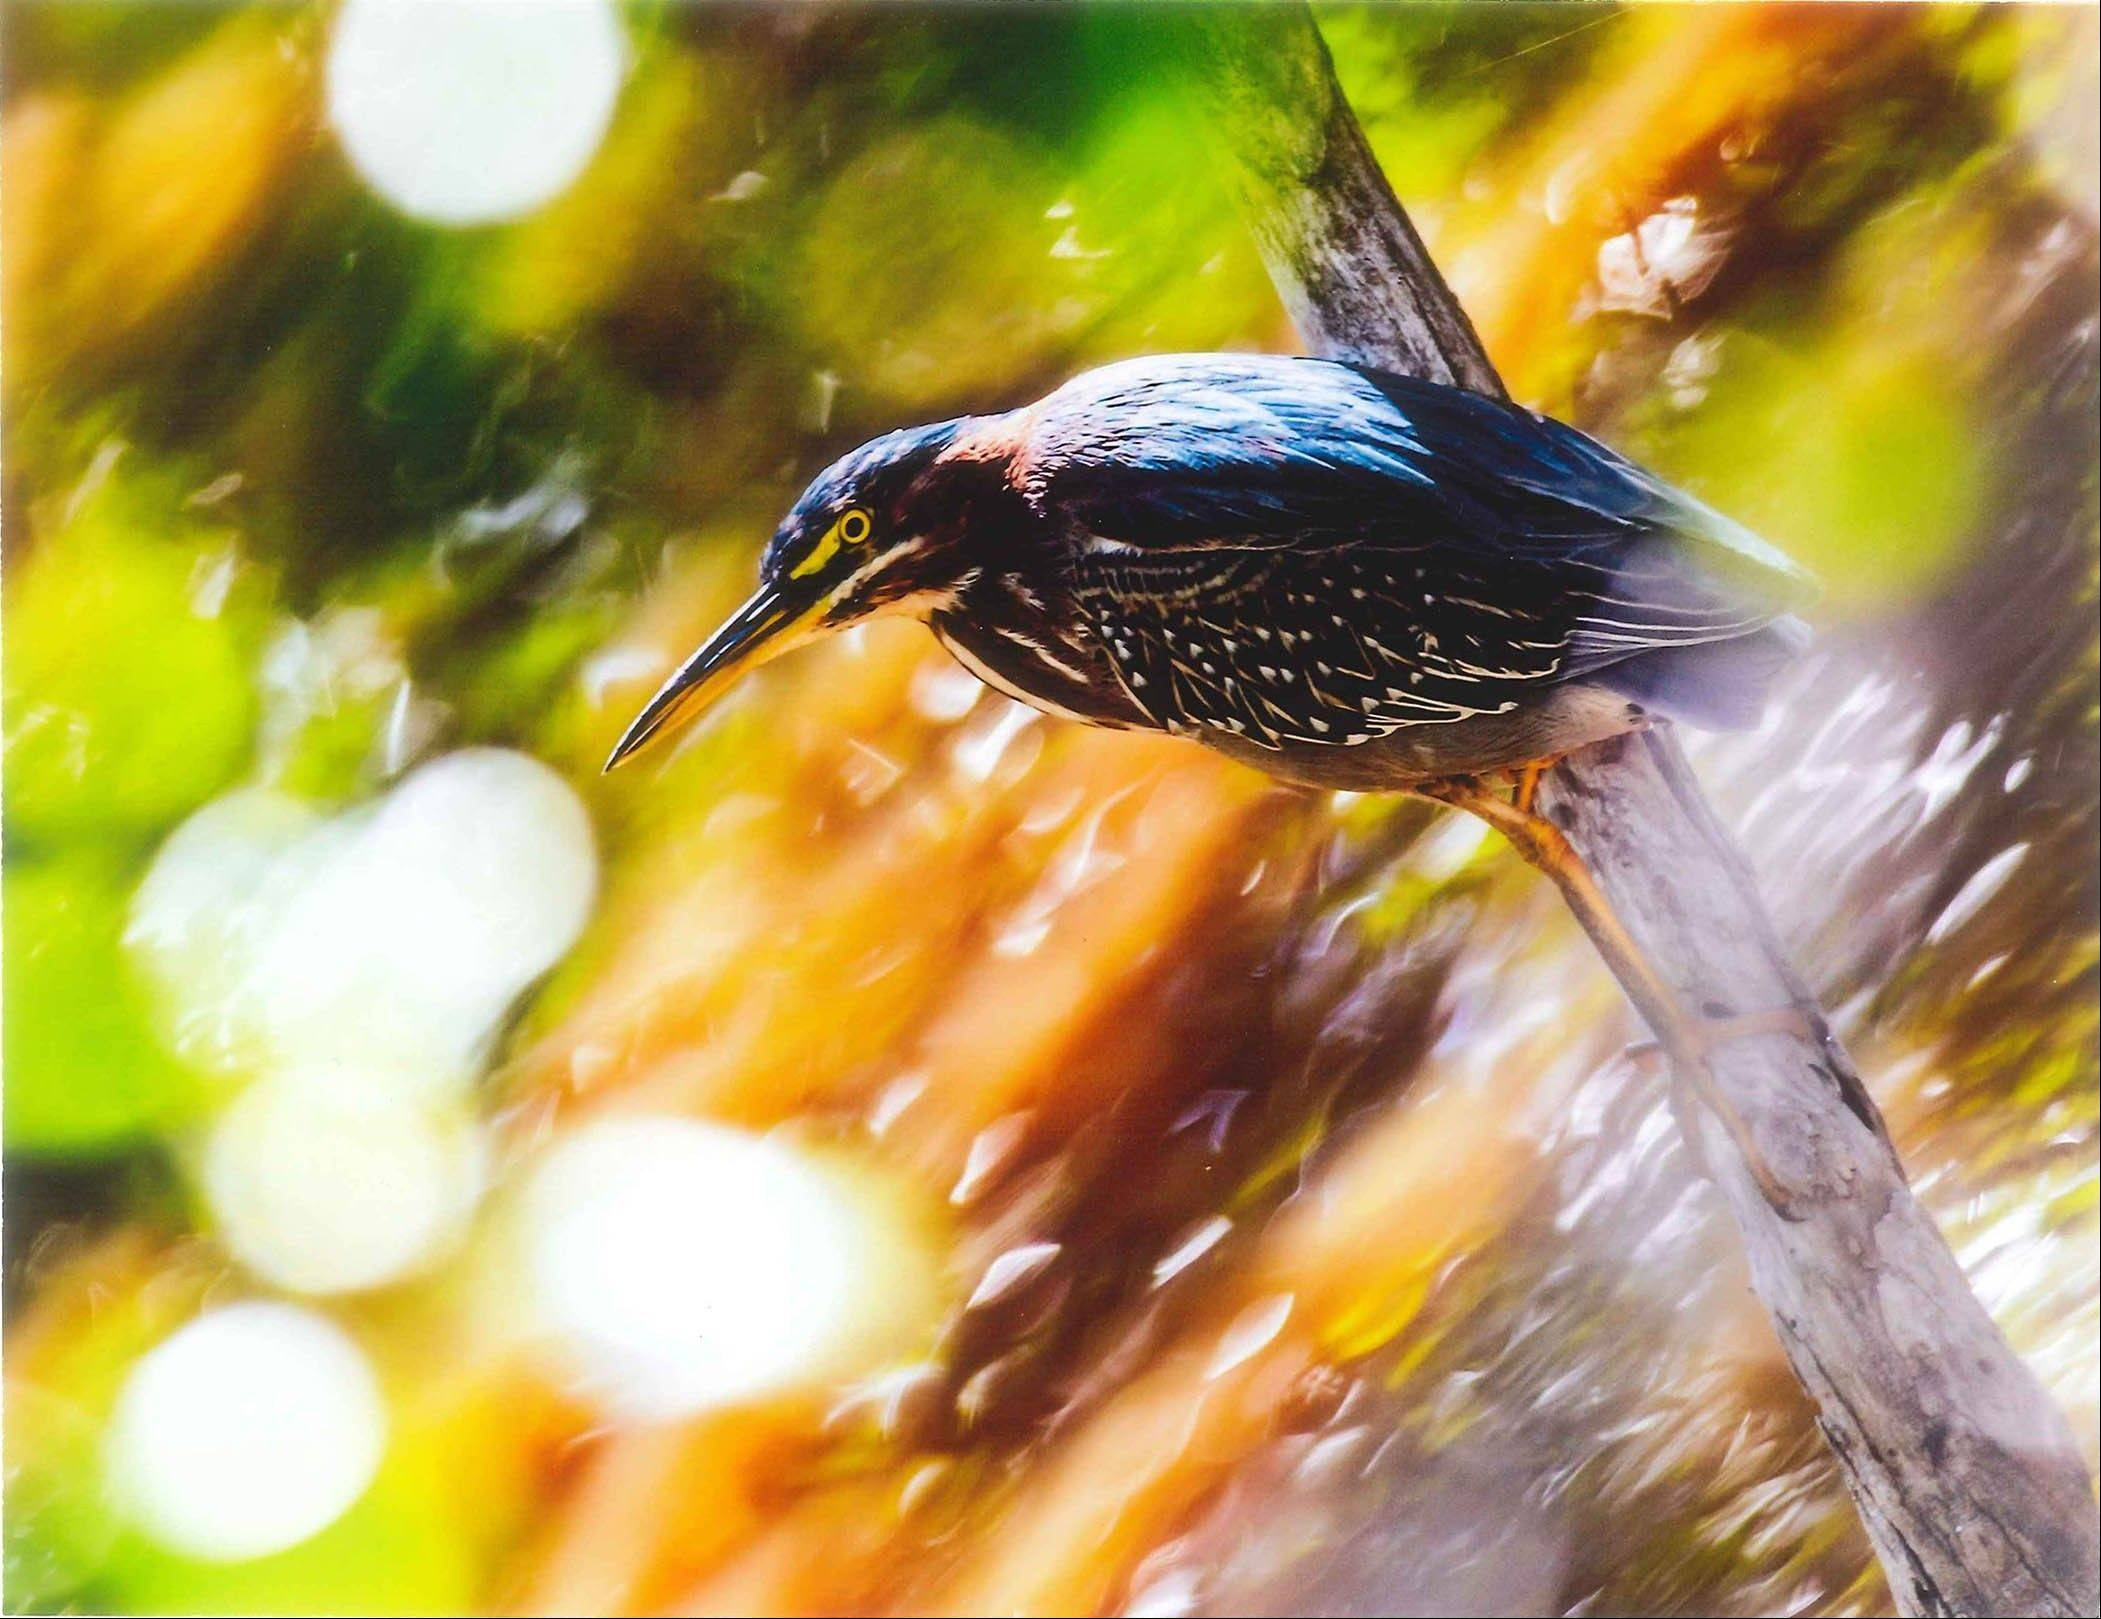 This image of a green heron at the Brookfield Zoo won Schaumburg resident Randolph Badiola the grand prize in the Chicago Zoological Society�s 2013 Photo Contest.